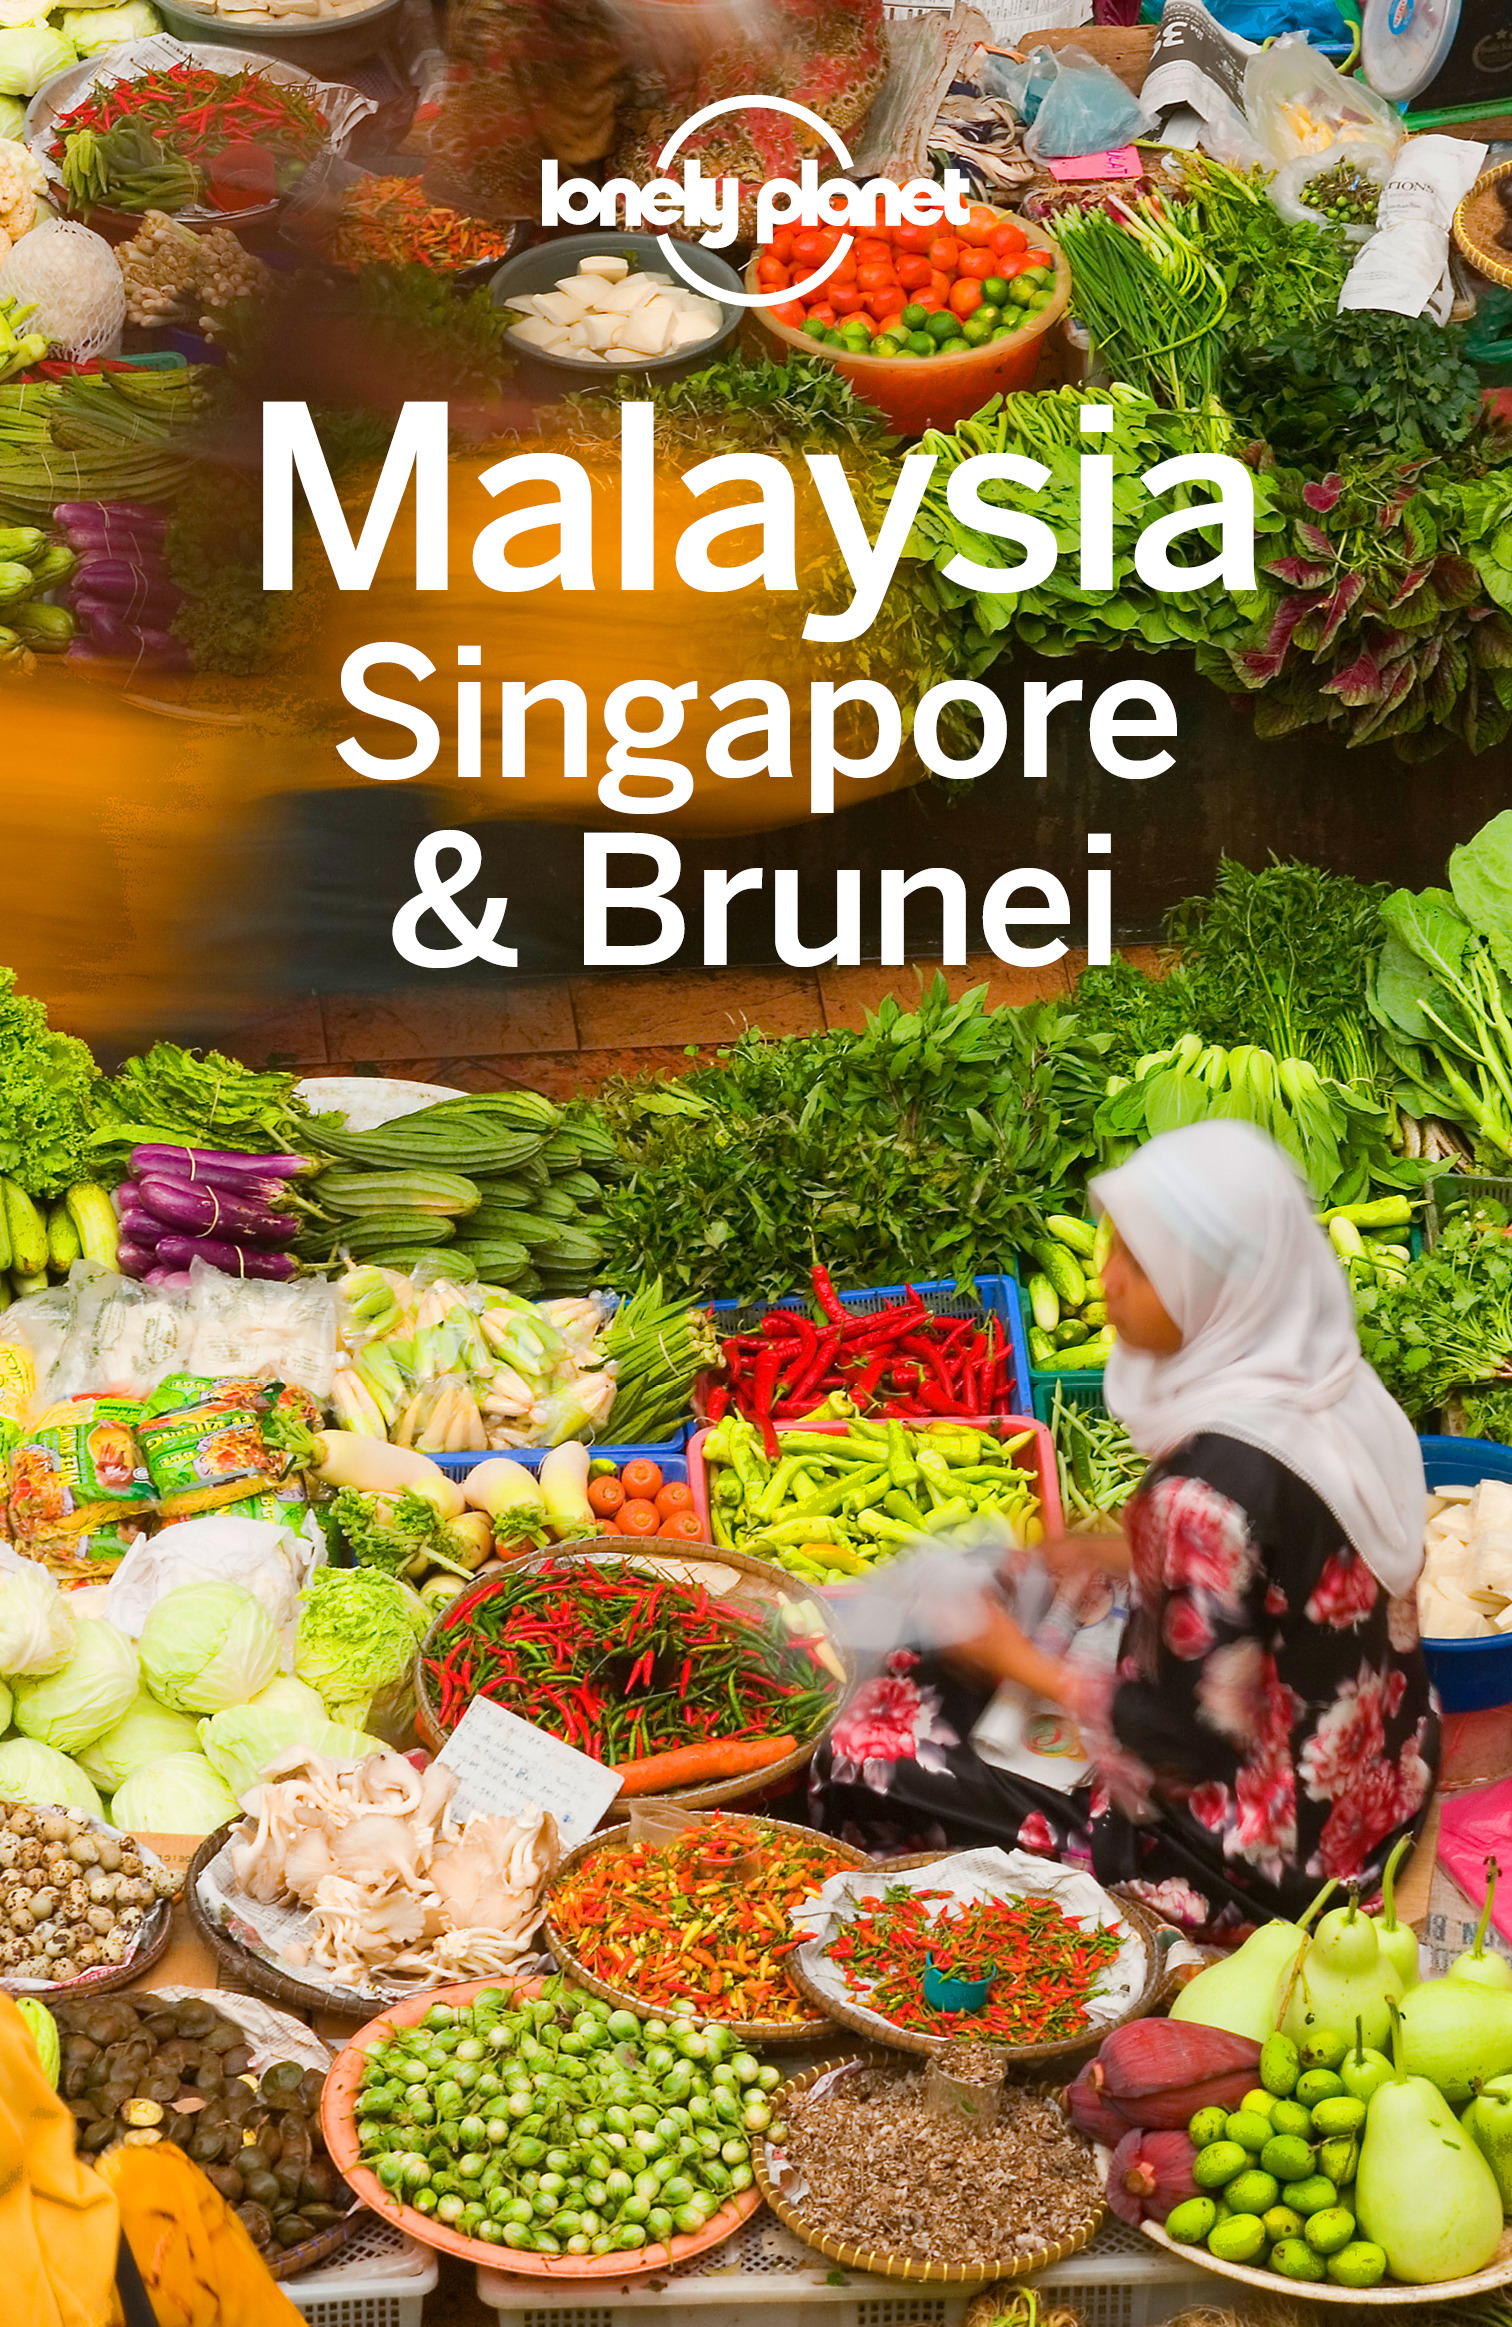 Albiston, Isabel - Lonely Planet Malaysia Singapore & Brunei, ebook